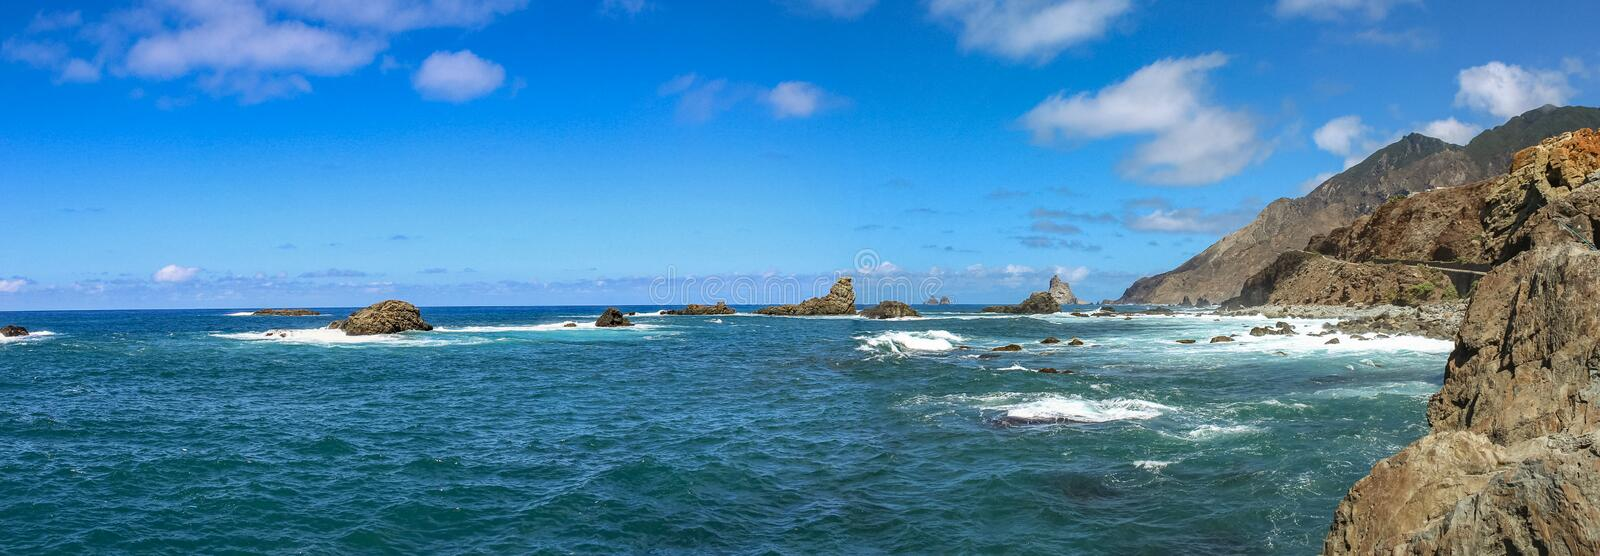 Panoramic view of Anaga cliffs and lone rocks sticking out of the sea foam on the north coast of the island Tenerife, Spain stock photo